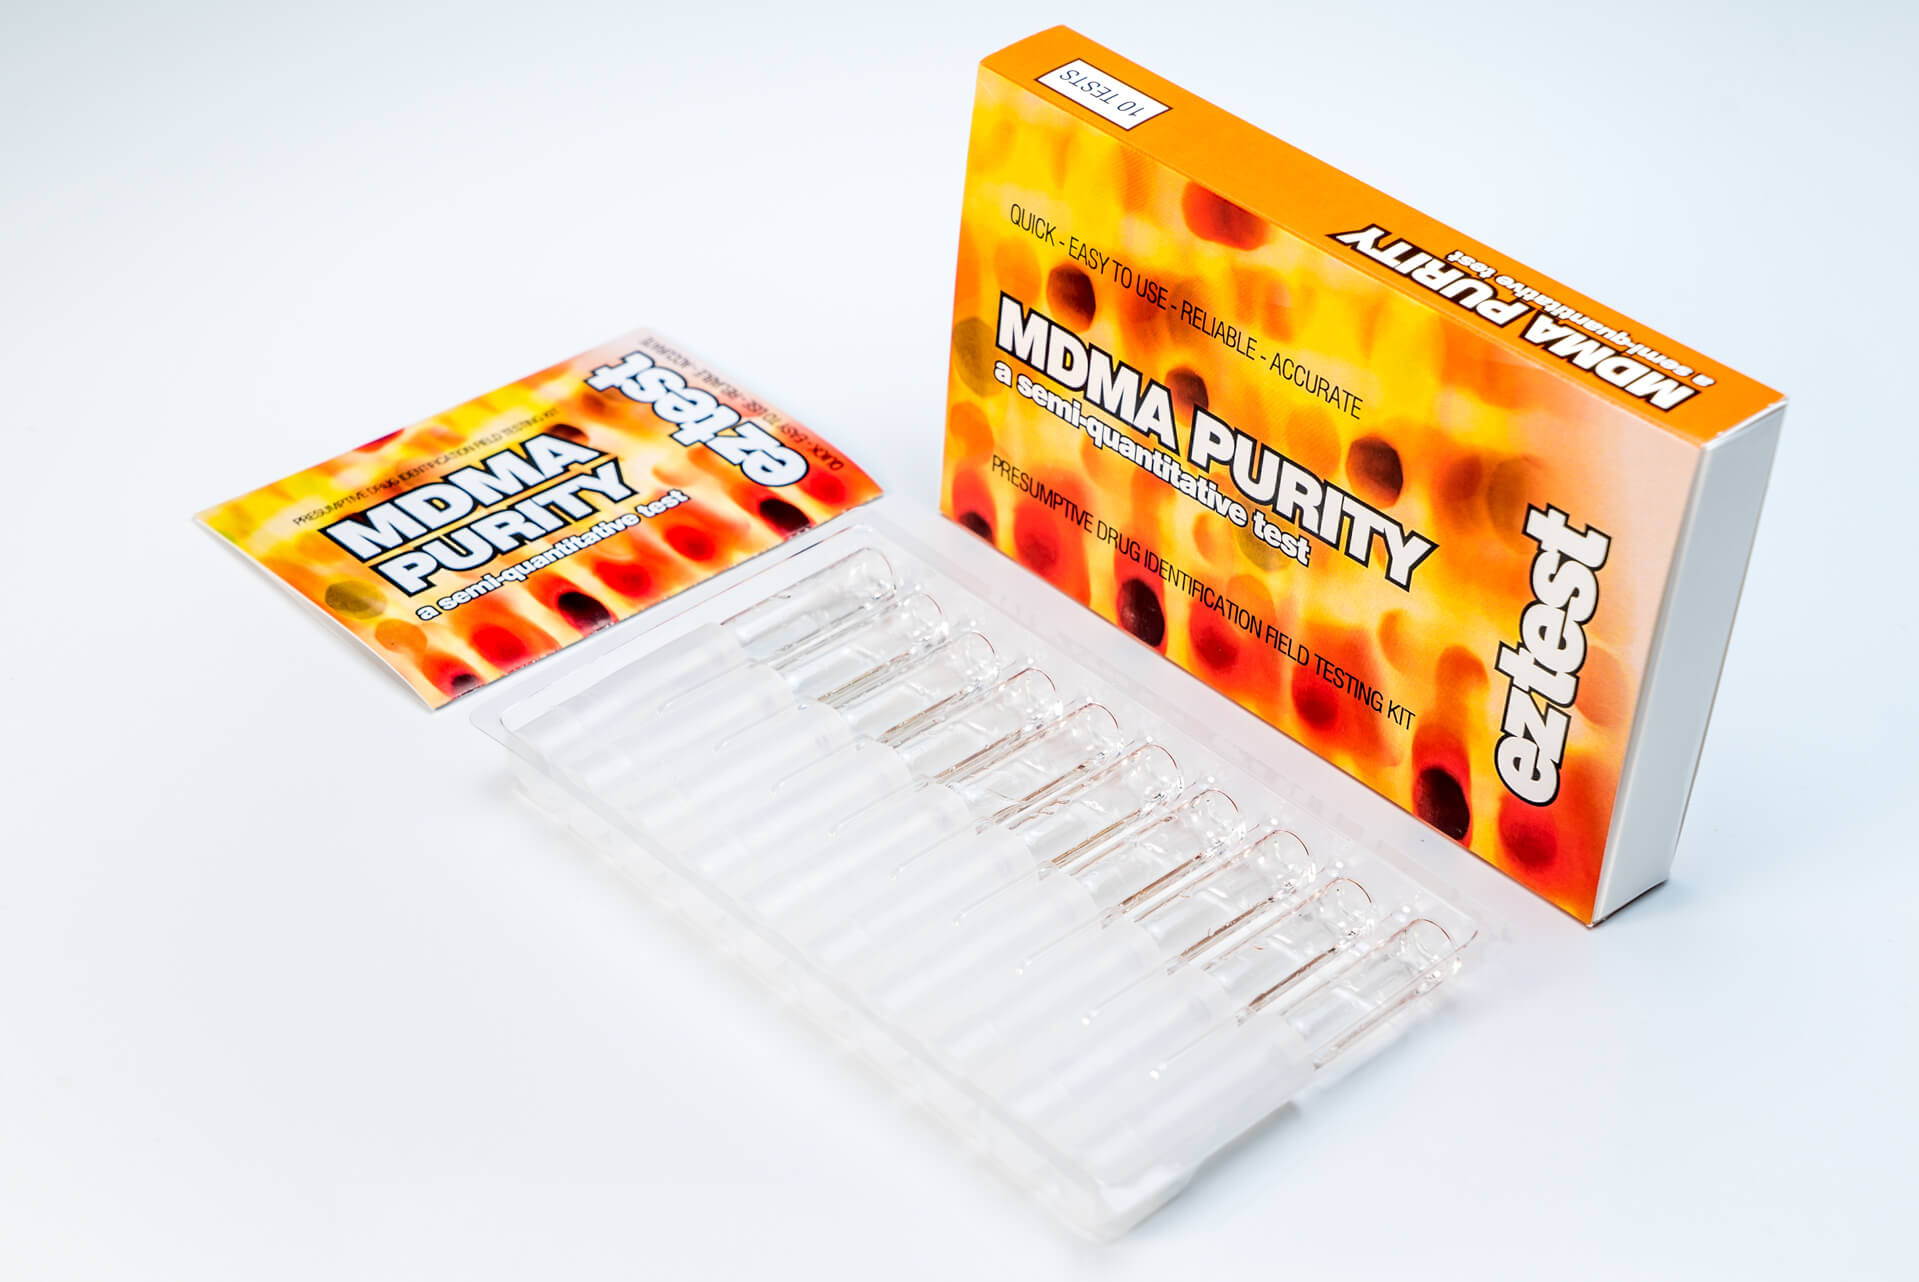 MDMA Purity 10 Use Drug Testing Kit